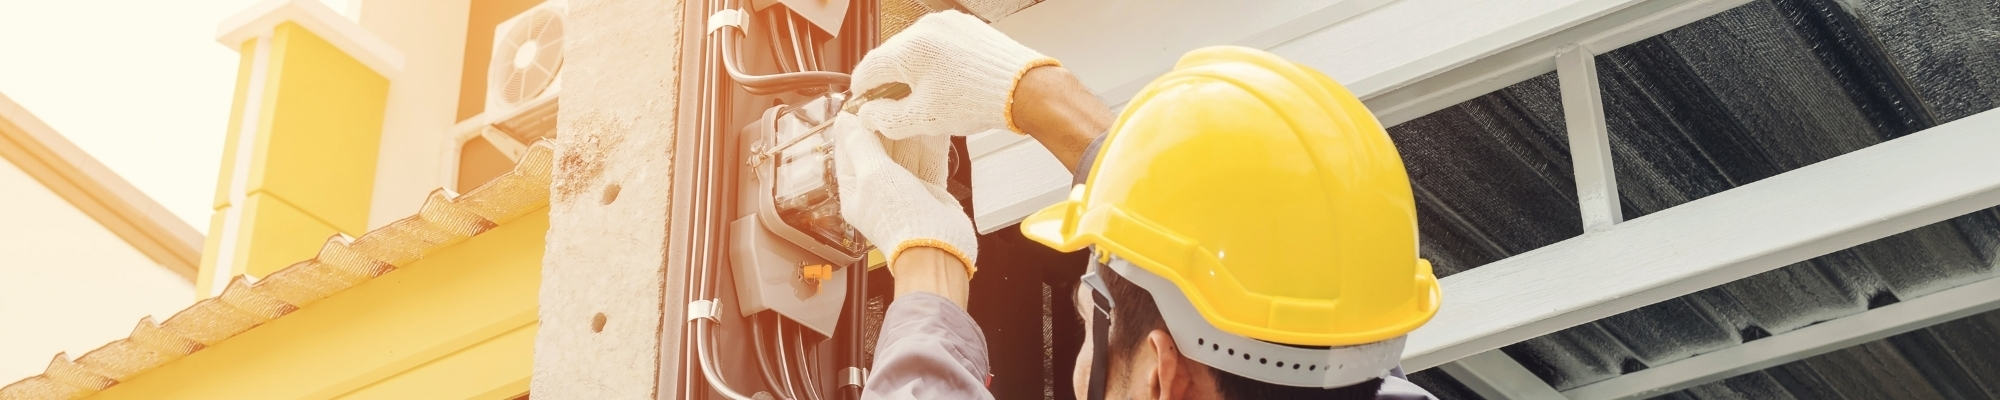 Public Liability for Electrical Contractors